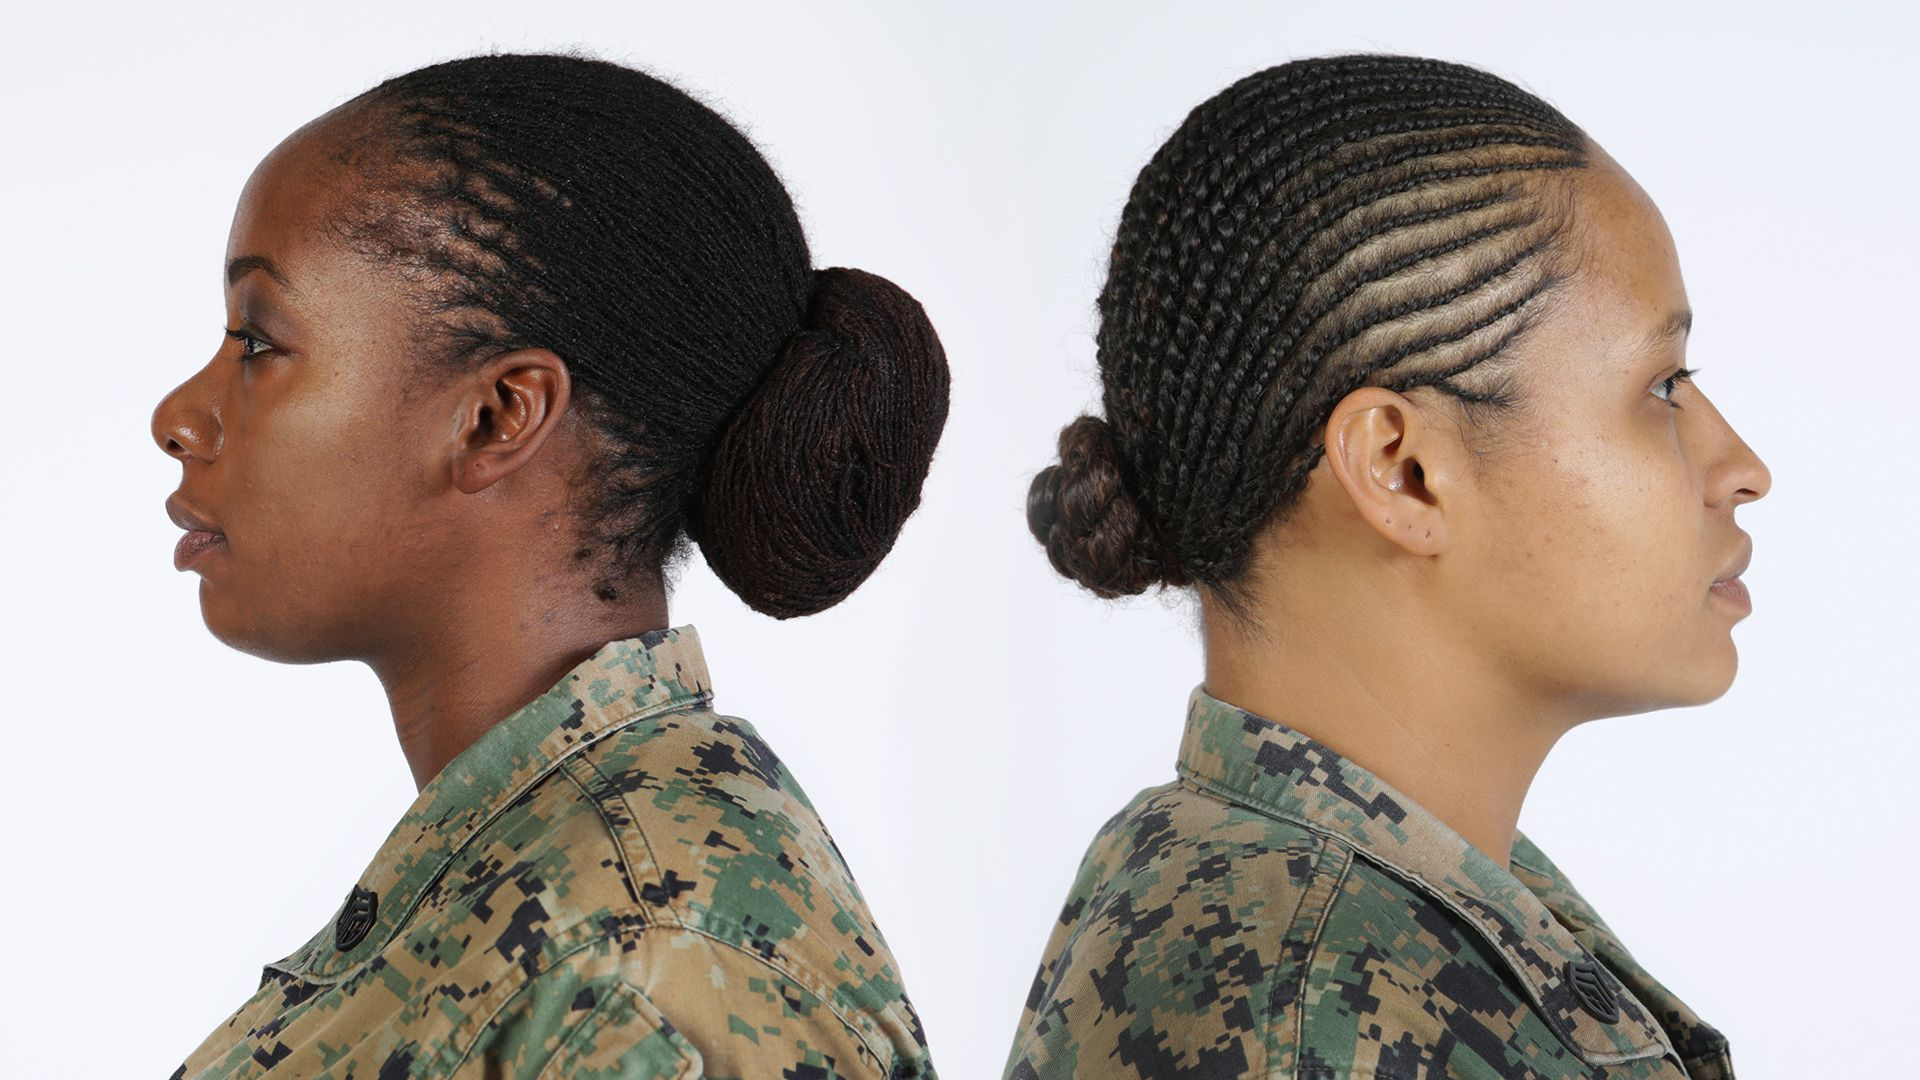 Army Grooming Standards for 10: Hair, Mustache, and Nail Regulations